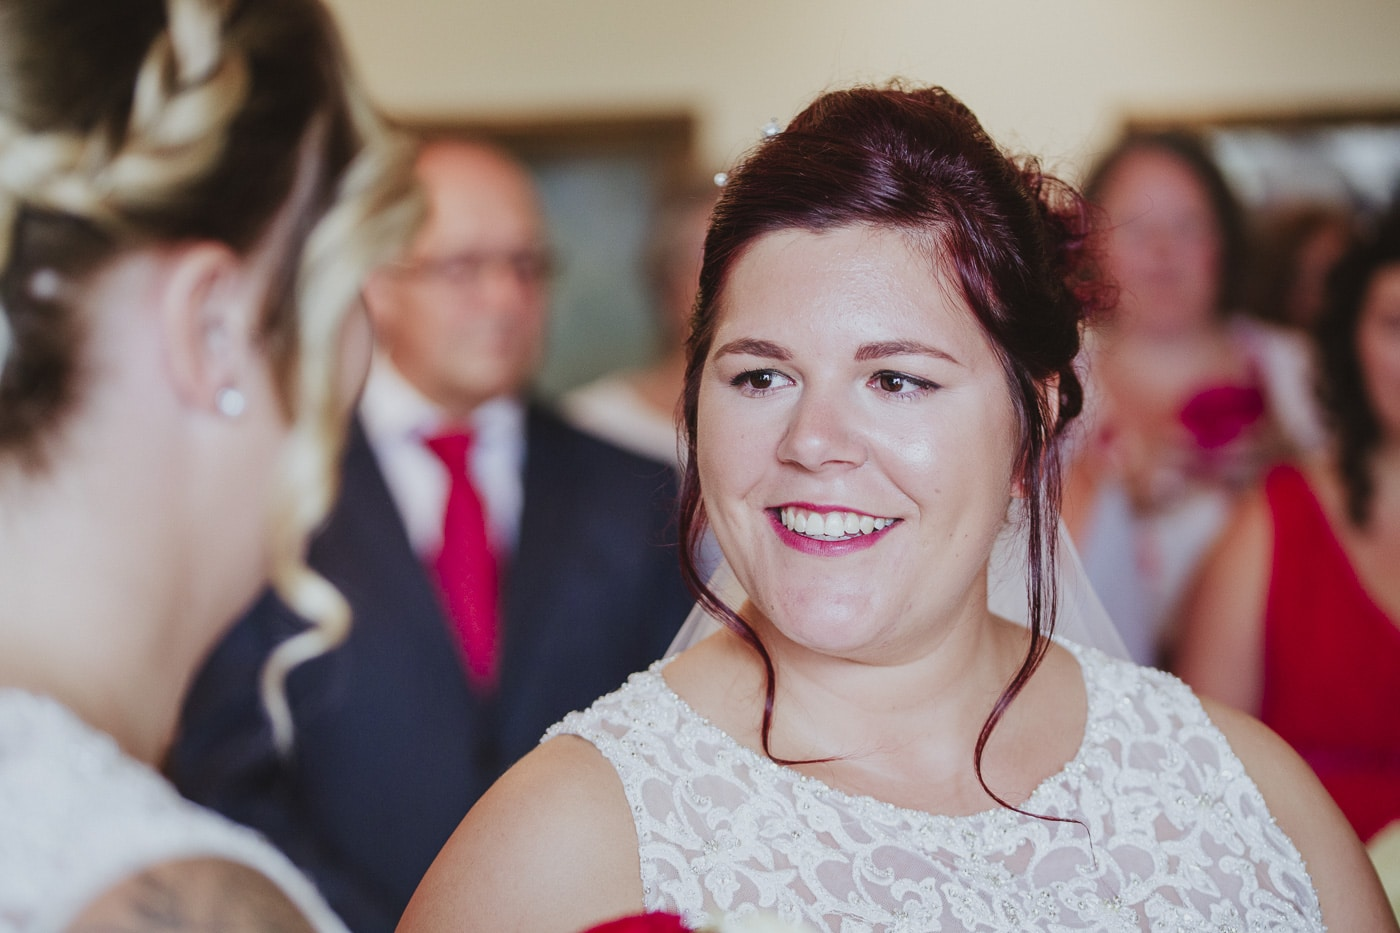 Smiling bride during vows for wedding by Joshua Wyborn photography